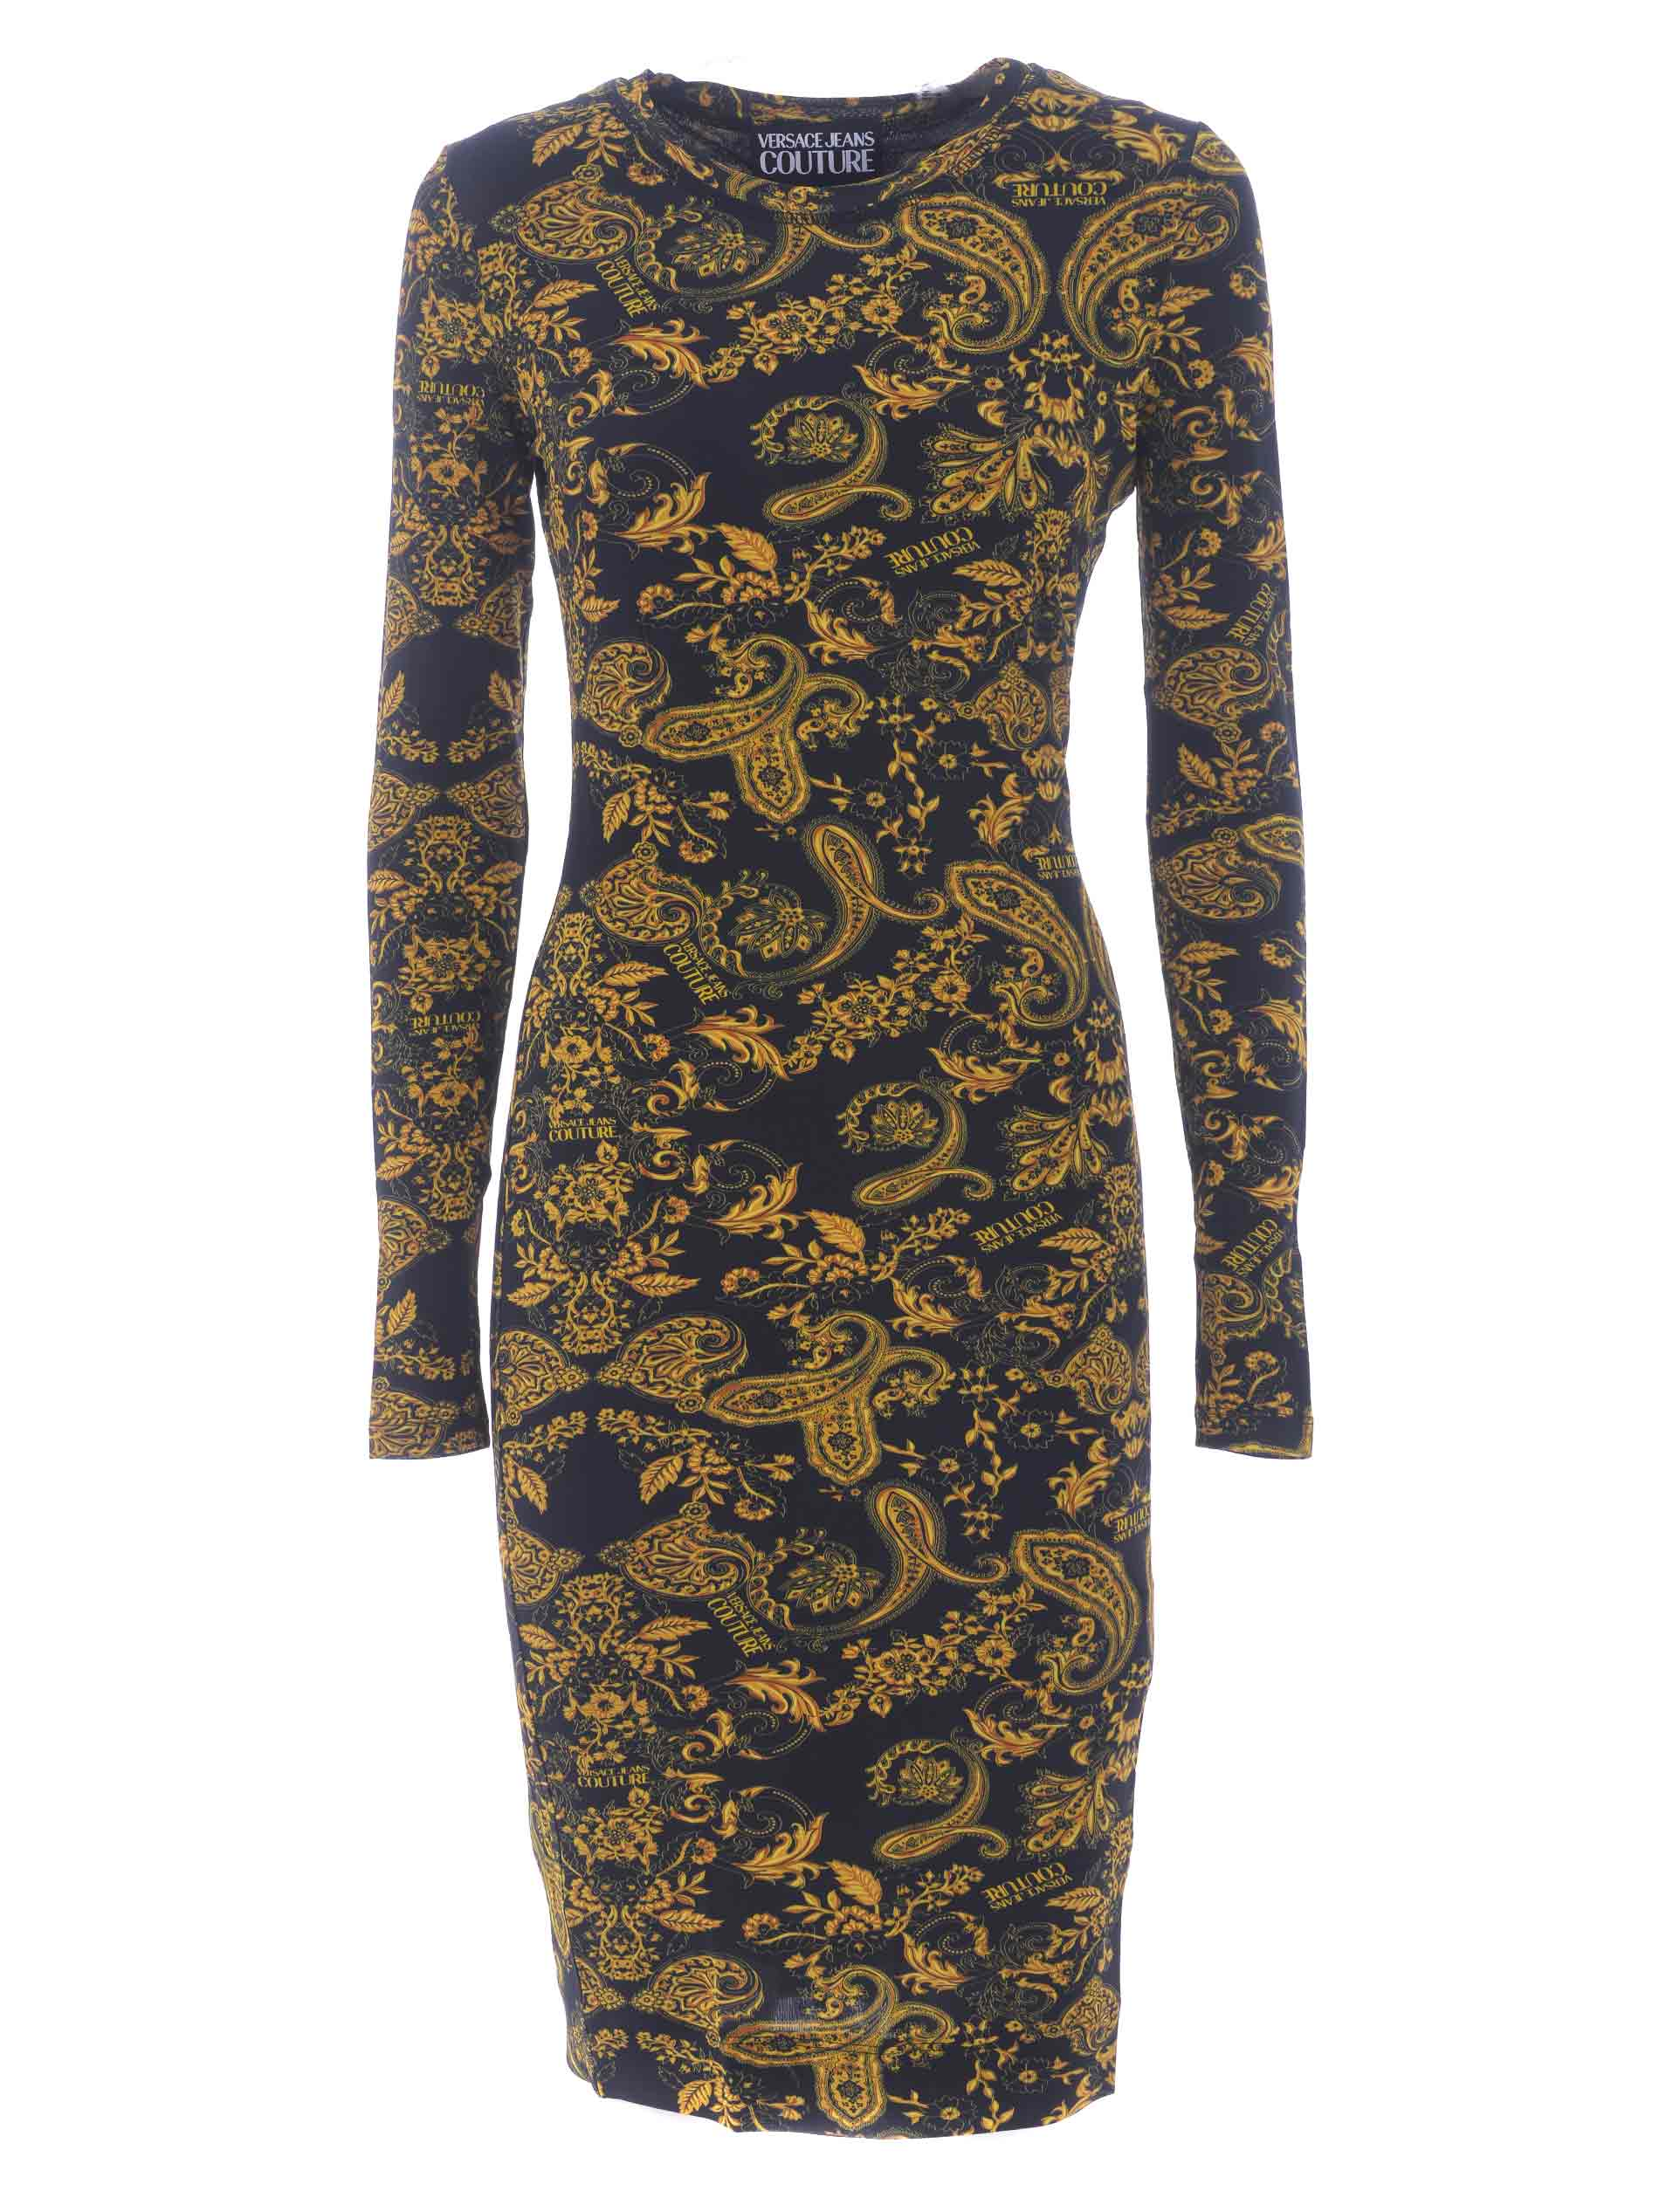 Versace Jeans Couture dress in stretch viscose